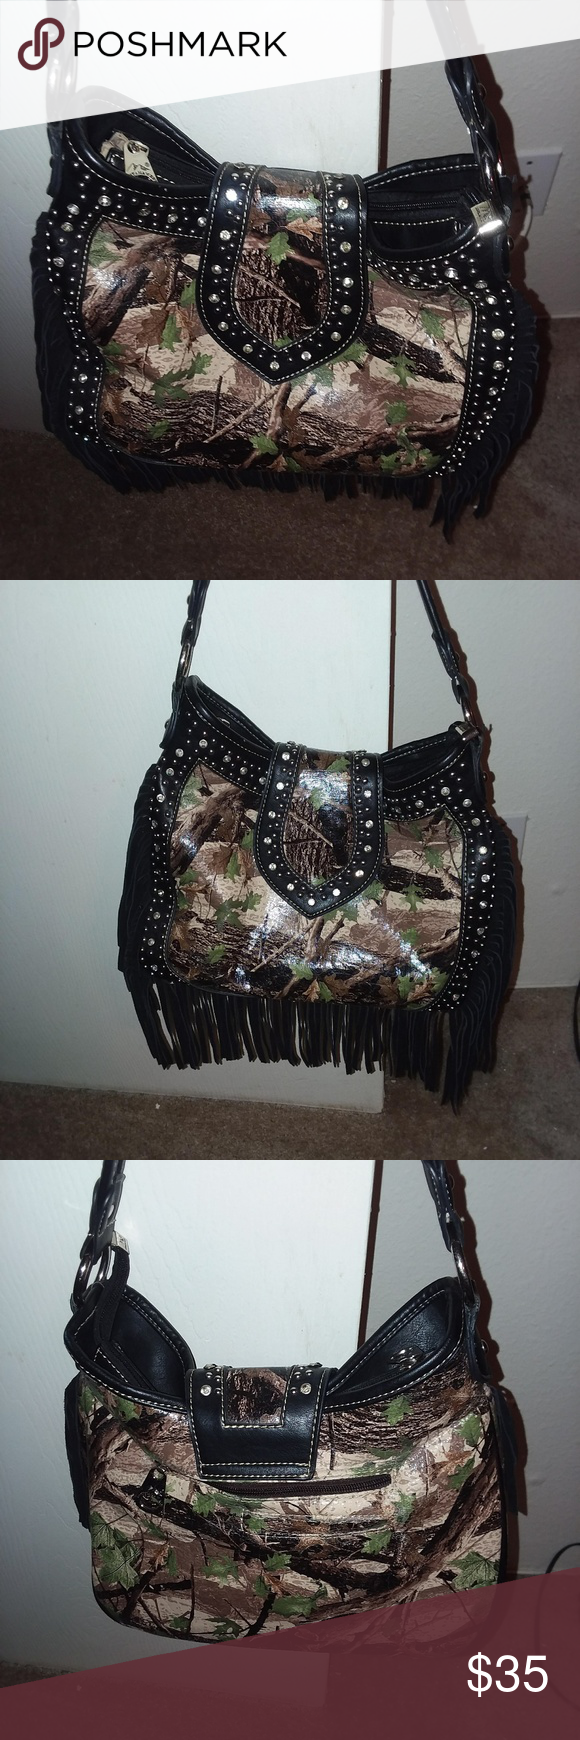 Montana West purse camouflage EUC Only used once Has fringe and rhinestones an  Montana West purse camouflage EUC Only used once Has fringe and rhinestones an  Montana We...